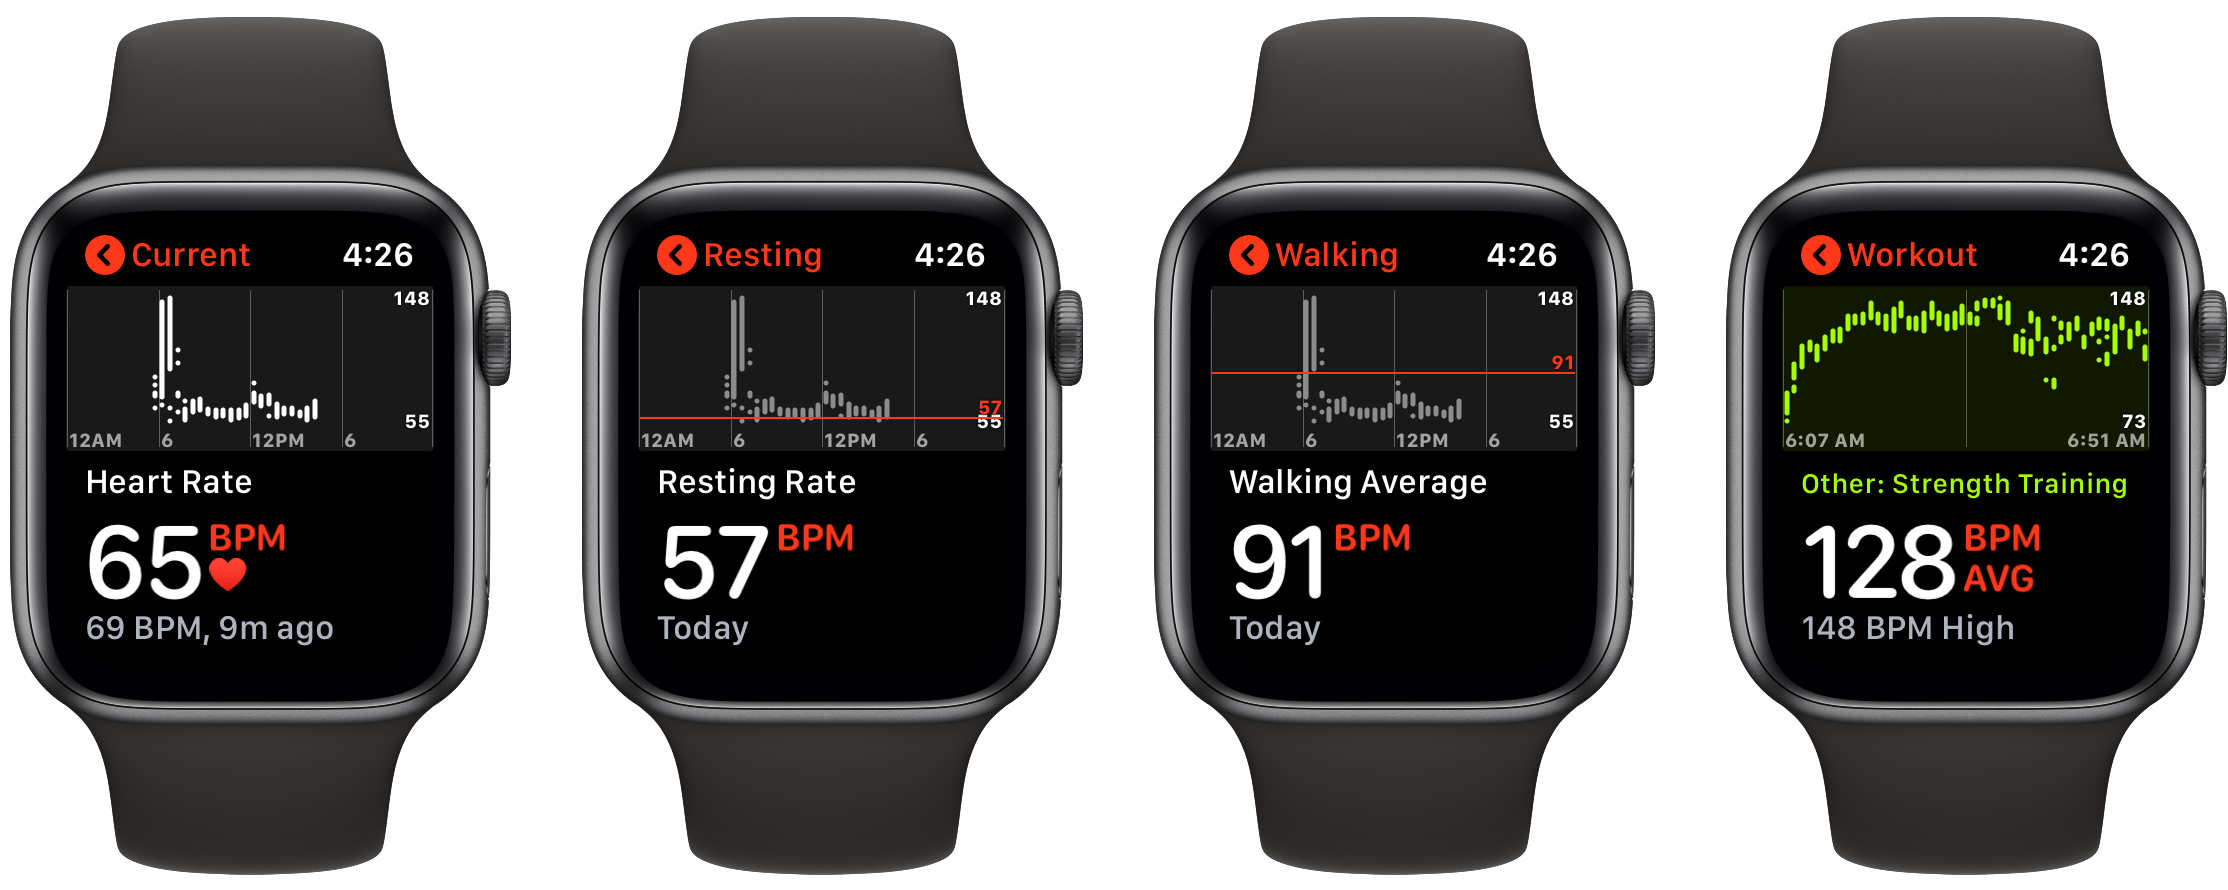 How to see Apple Watch heart rate history - Apple Watch